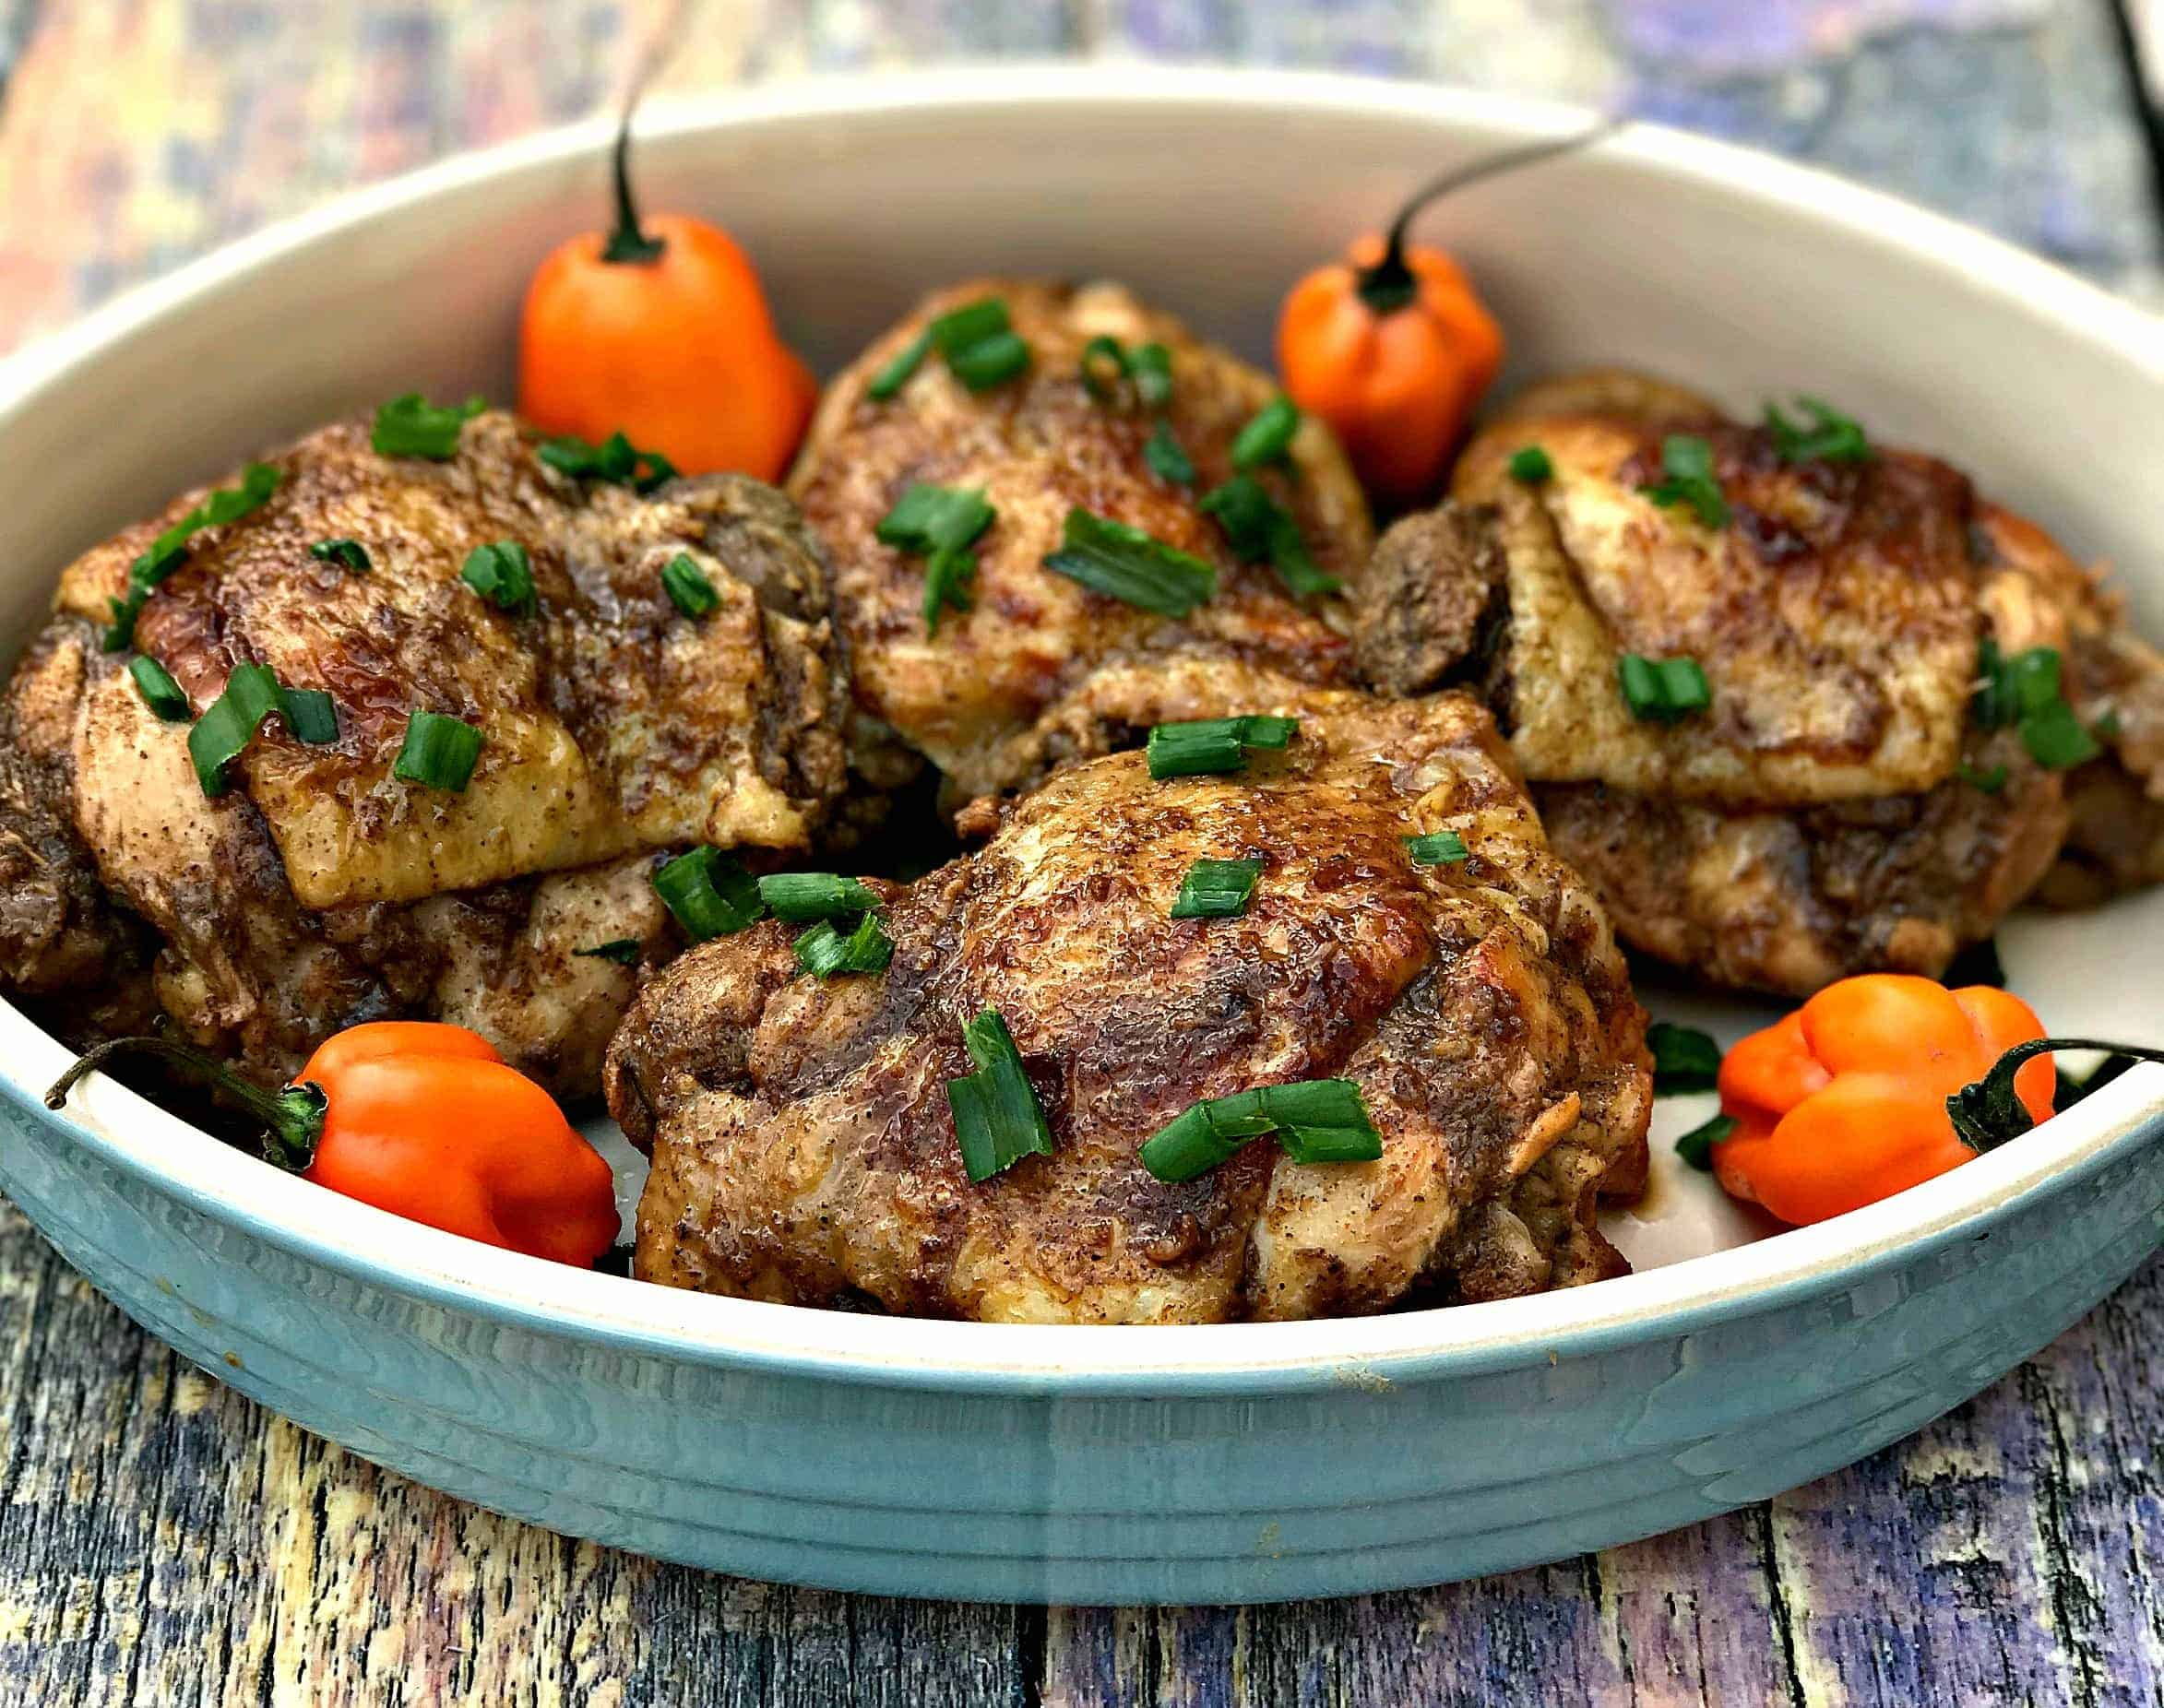 Jamaican jerk chicken thighs on a serving platter garnished with green onions and habanero peppers